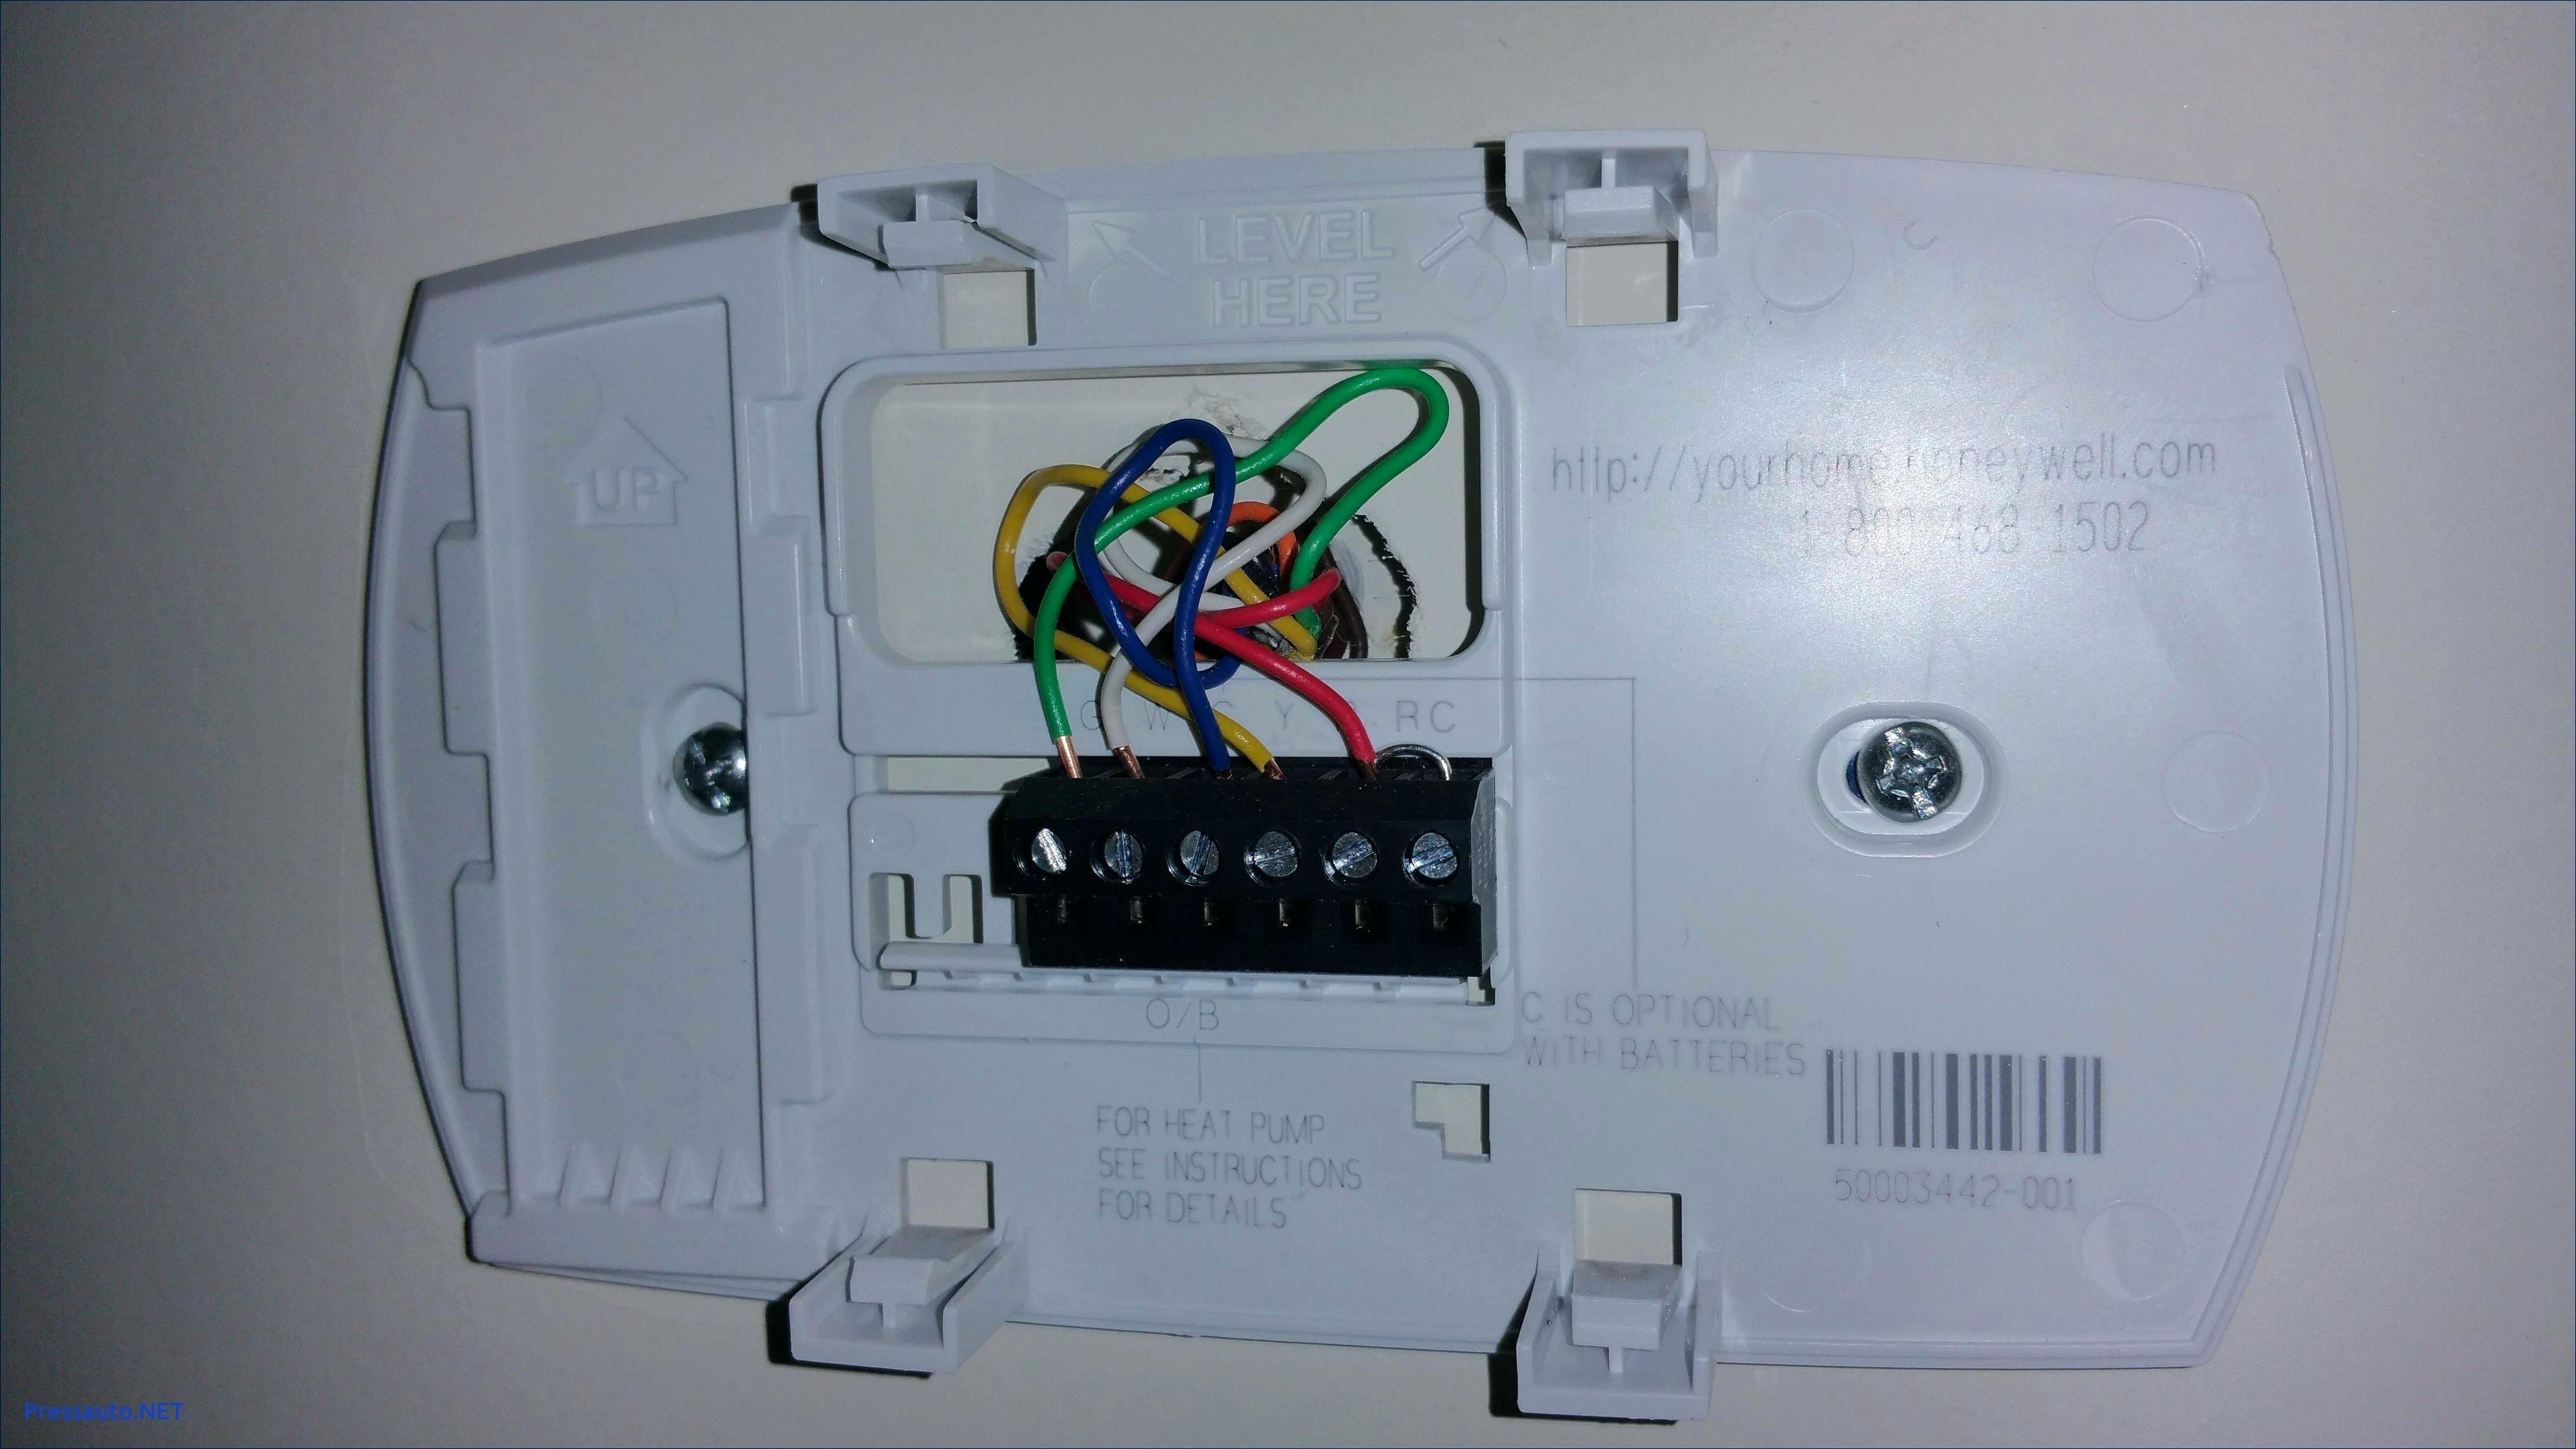 Dometic Single Zone Thermostat Wiring Diagram | Wiring Diagram - Dometic Rv Thermostat Wiring Diagram